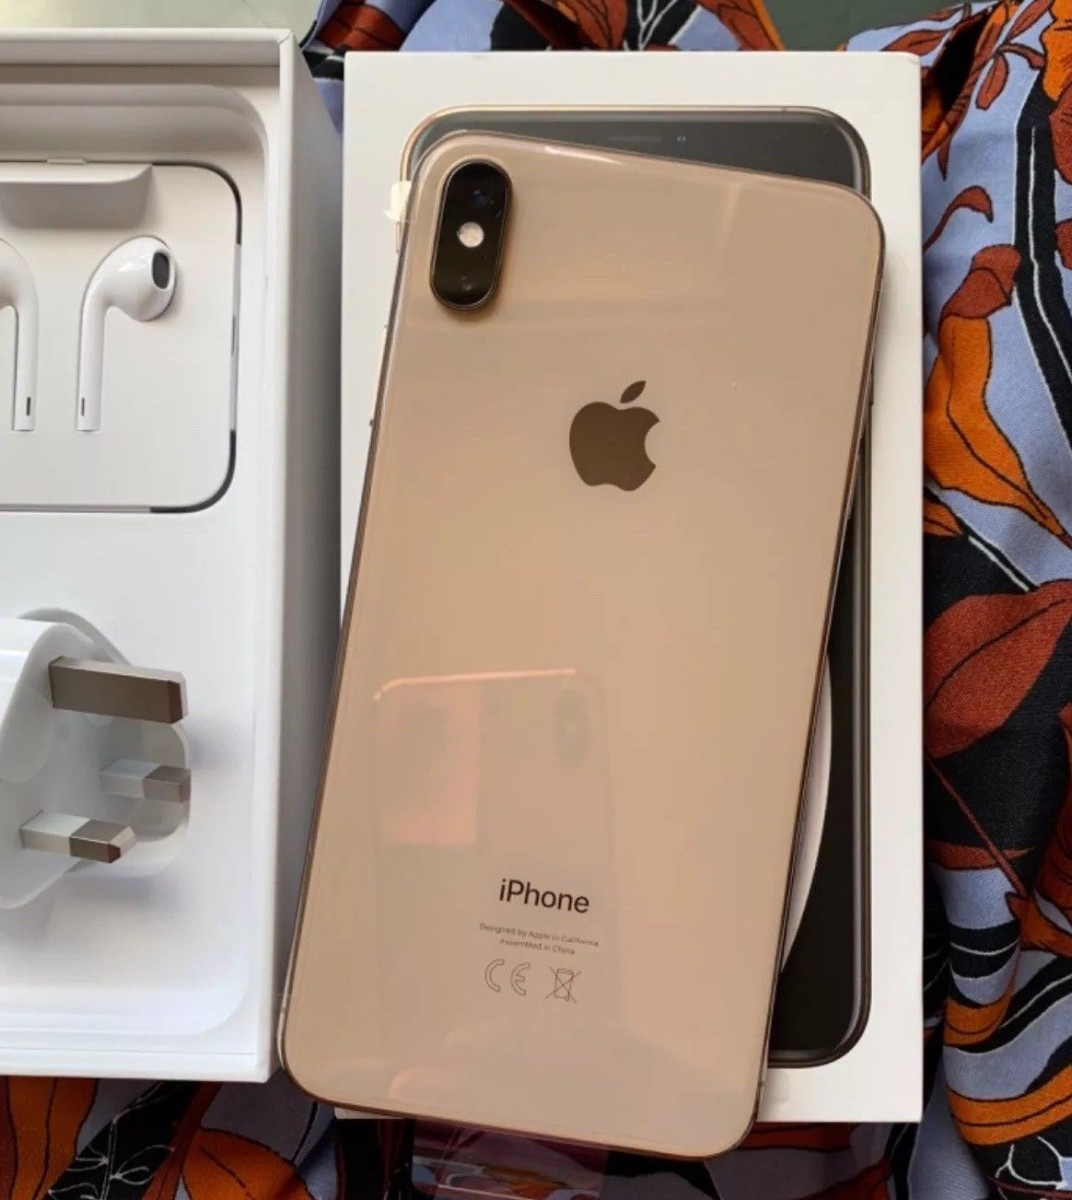 Genuine Unlocked iPhone Xs Max, Note 9 S